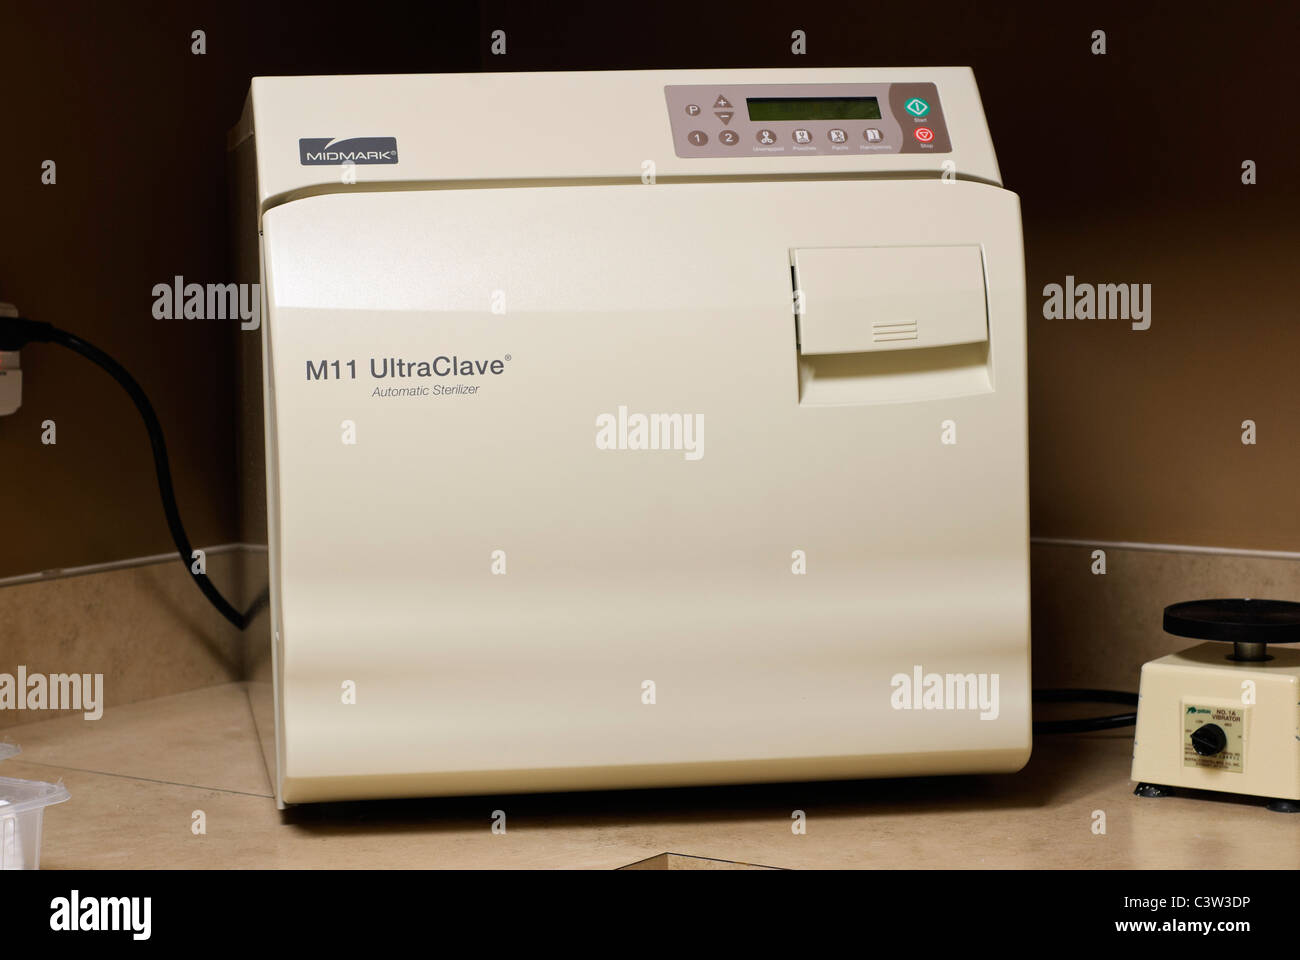 New ultraclave equipment in a dental clinic. - Stock Image